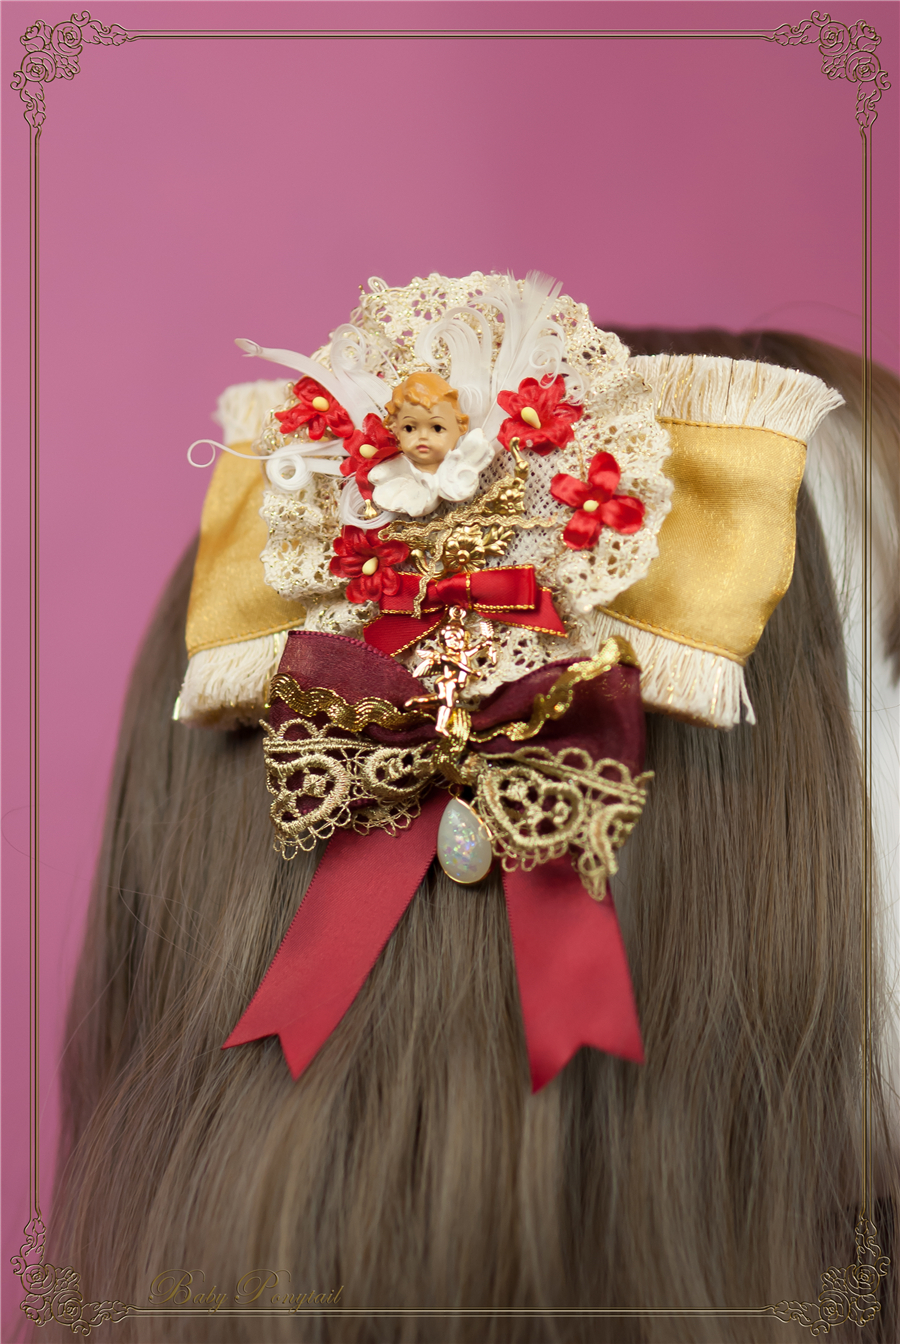 Baby Ponytail_Stock photo_Circus Princess_Angel Brooch_Red_ 02.jpg